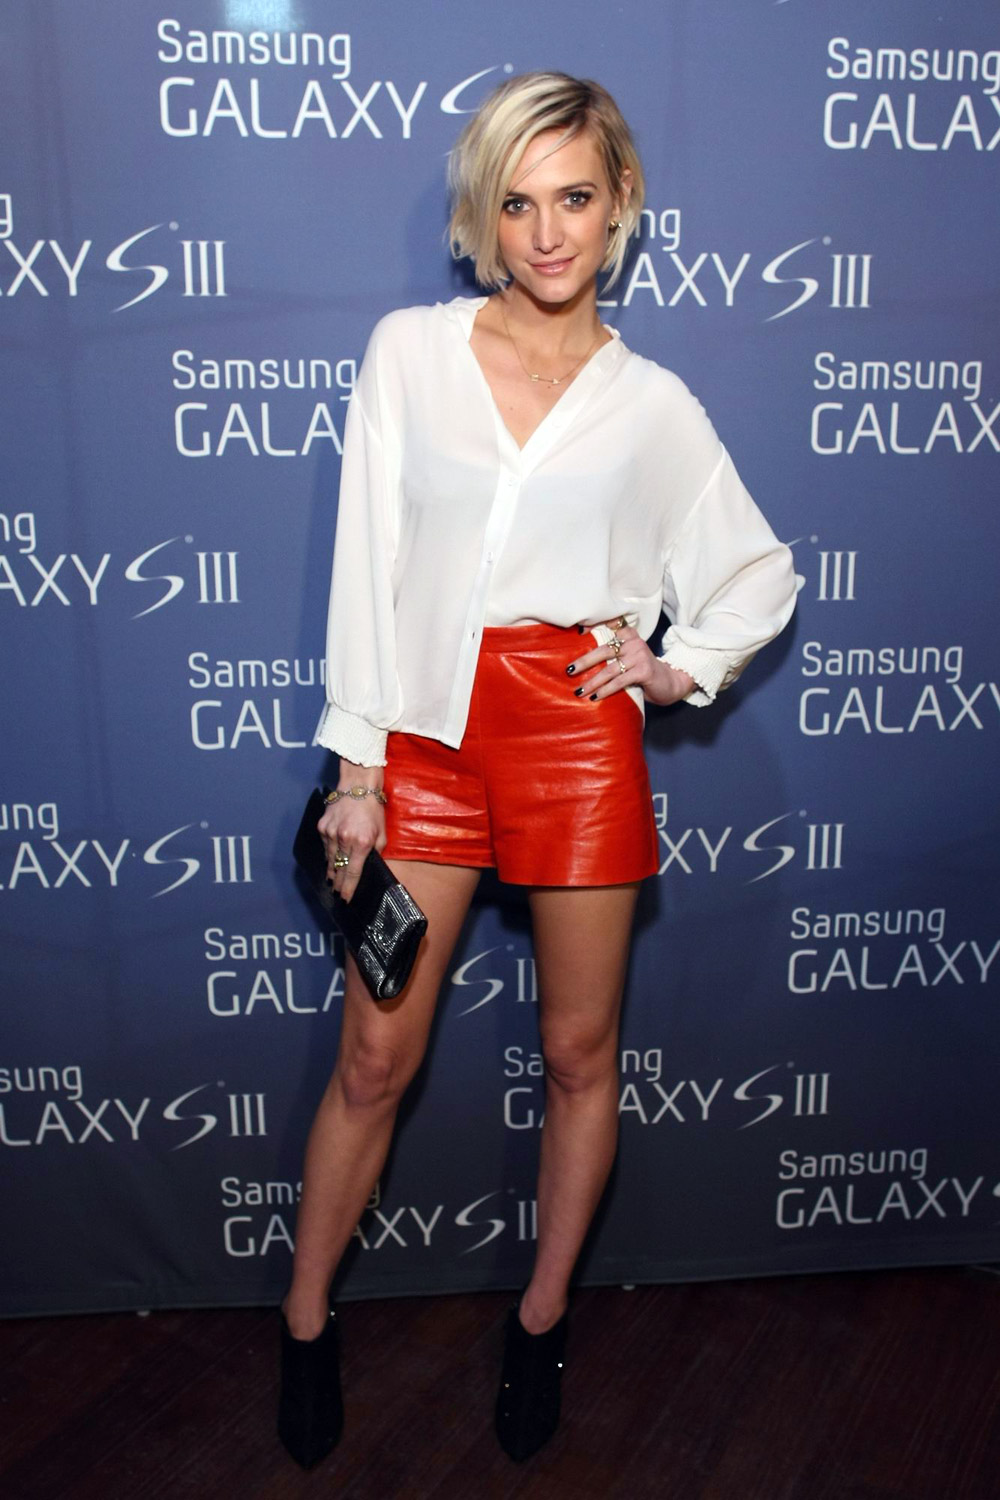 Ashlee Simpson at Samsung Galaxy S III event